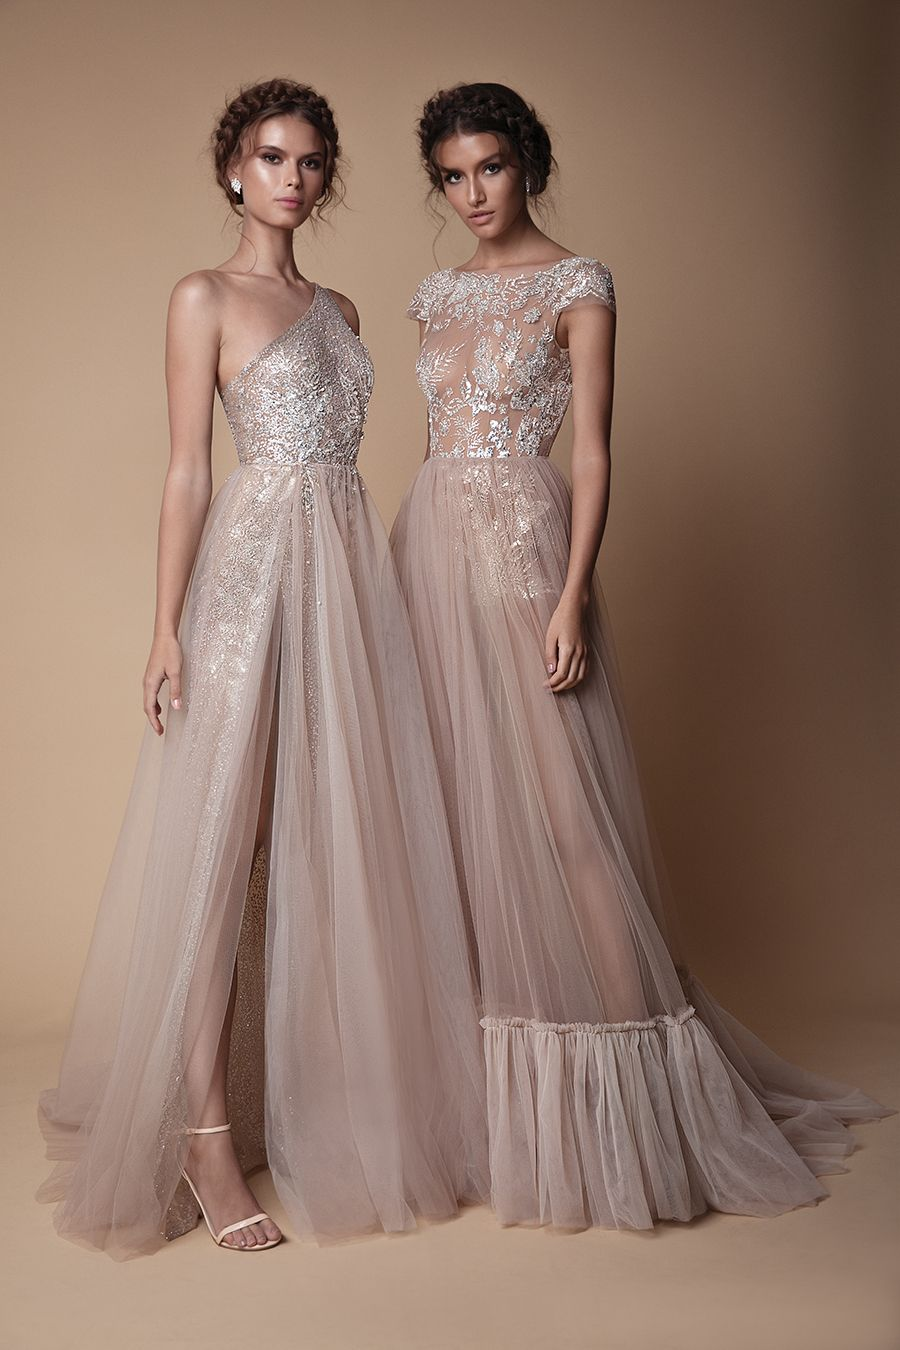 b8e4a6091b5 Gorgeous champagne coloured sheer evening wedding gown with tulle skirts